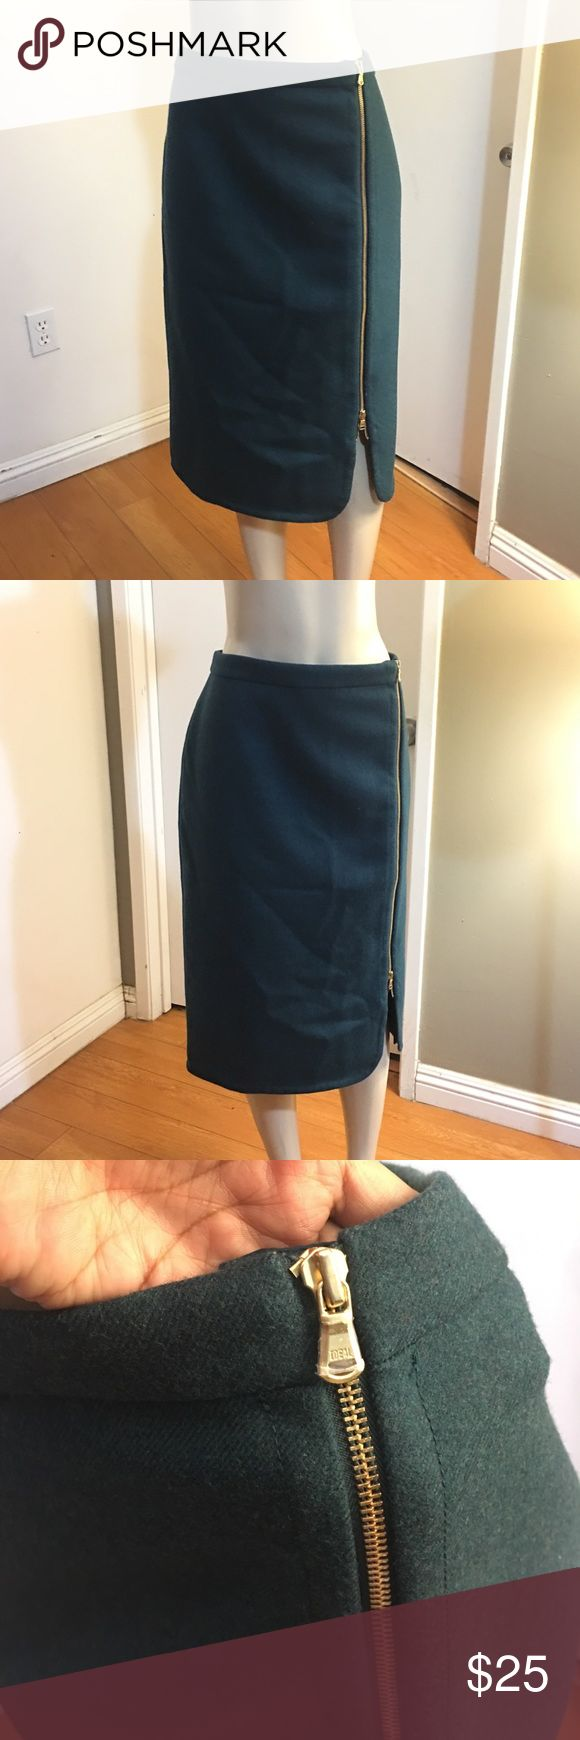 NWOT J.Crew Wool Exposed Zipper Skirt 100% Wool New without tags  Size 16T Gorgeous fitting  Dark emerald green color  Length 28 inches Waist 35 inches  Please measure yourself before buying anything from my closet J. Crew Skirts